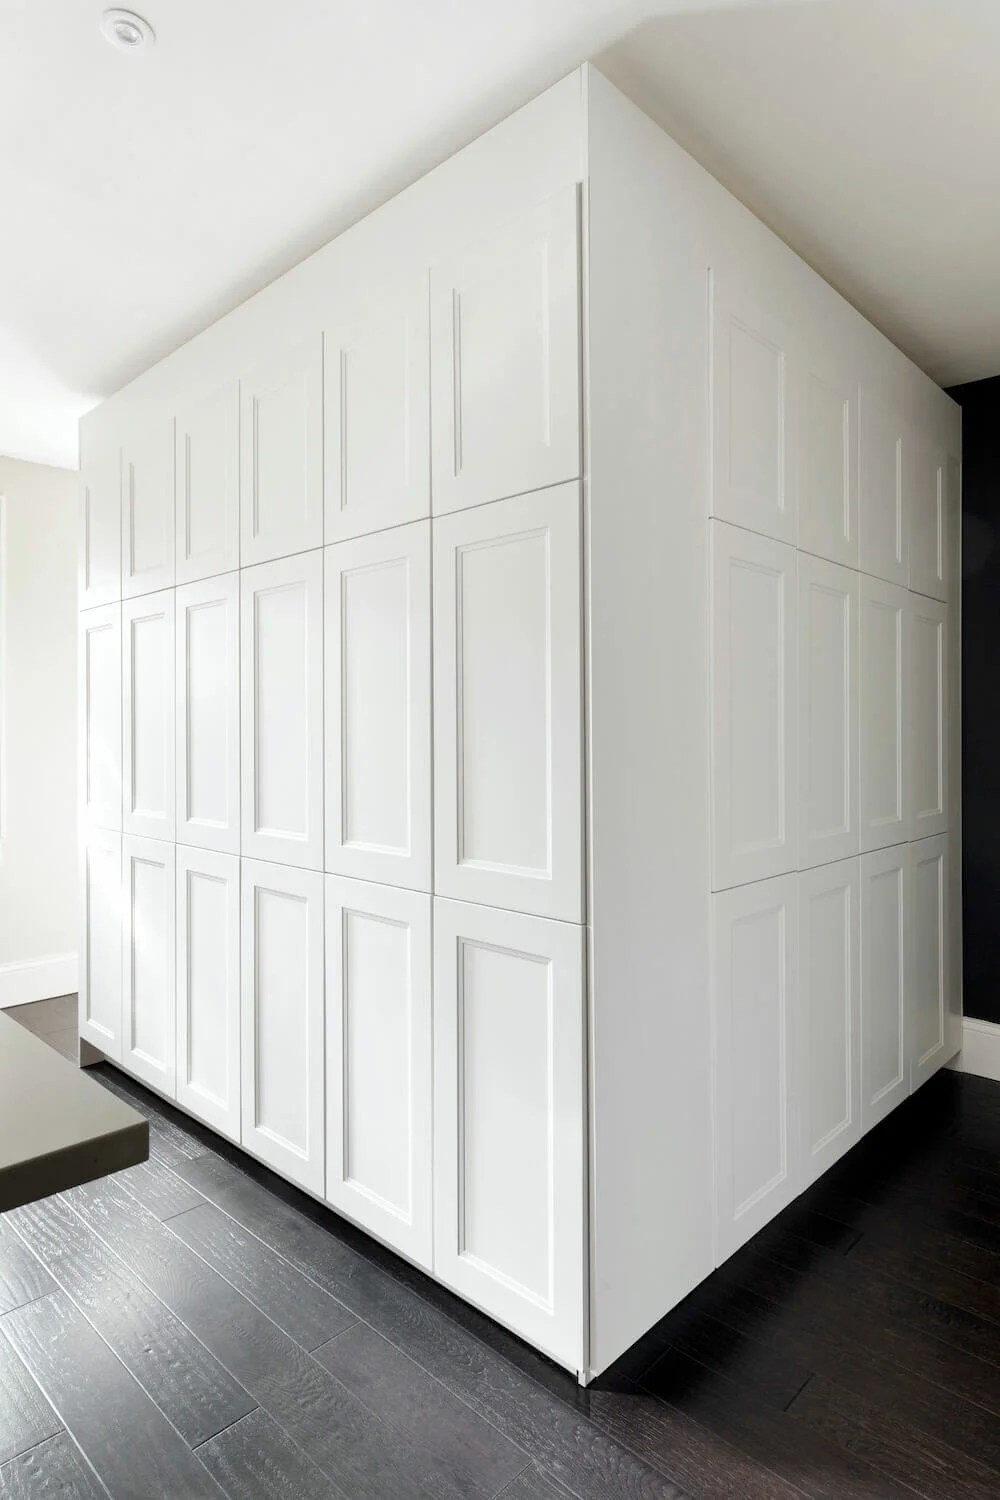 Building Wall Cabinets : building, cabinets, Kitchen, Cabinets:, Expanding, Trend, Sweeten.com